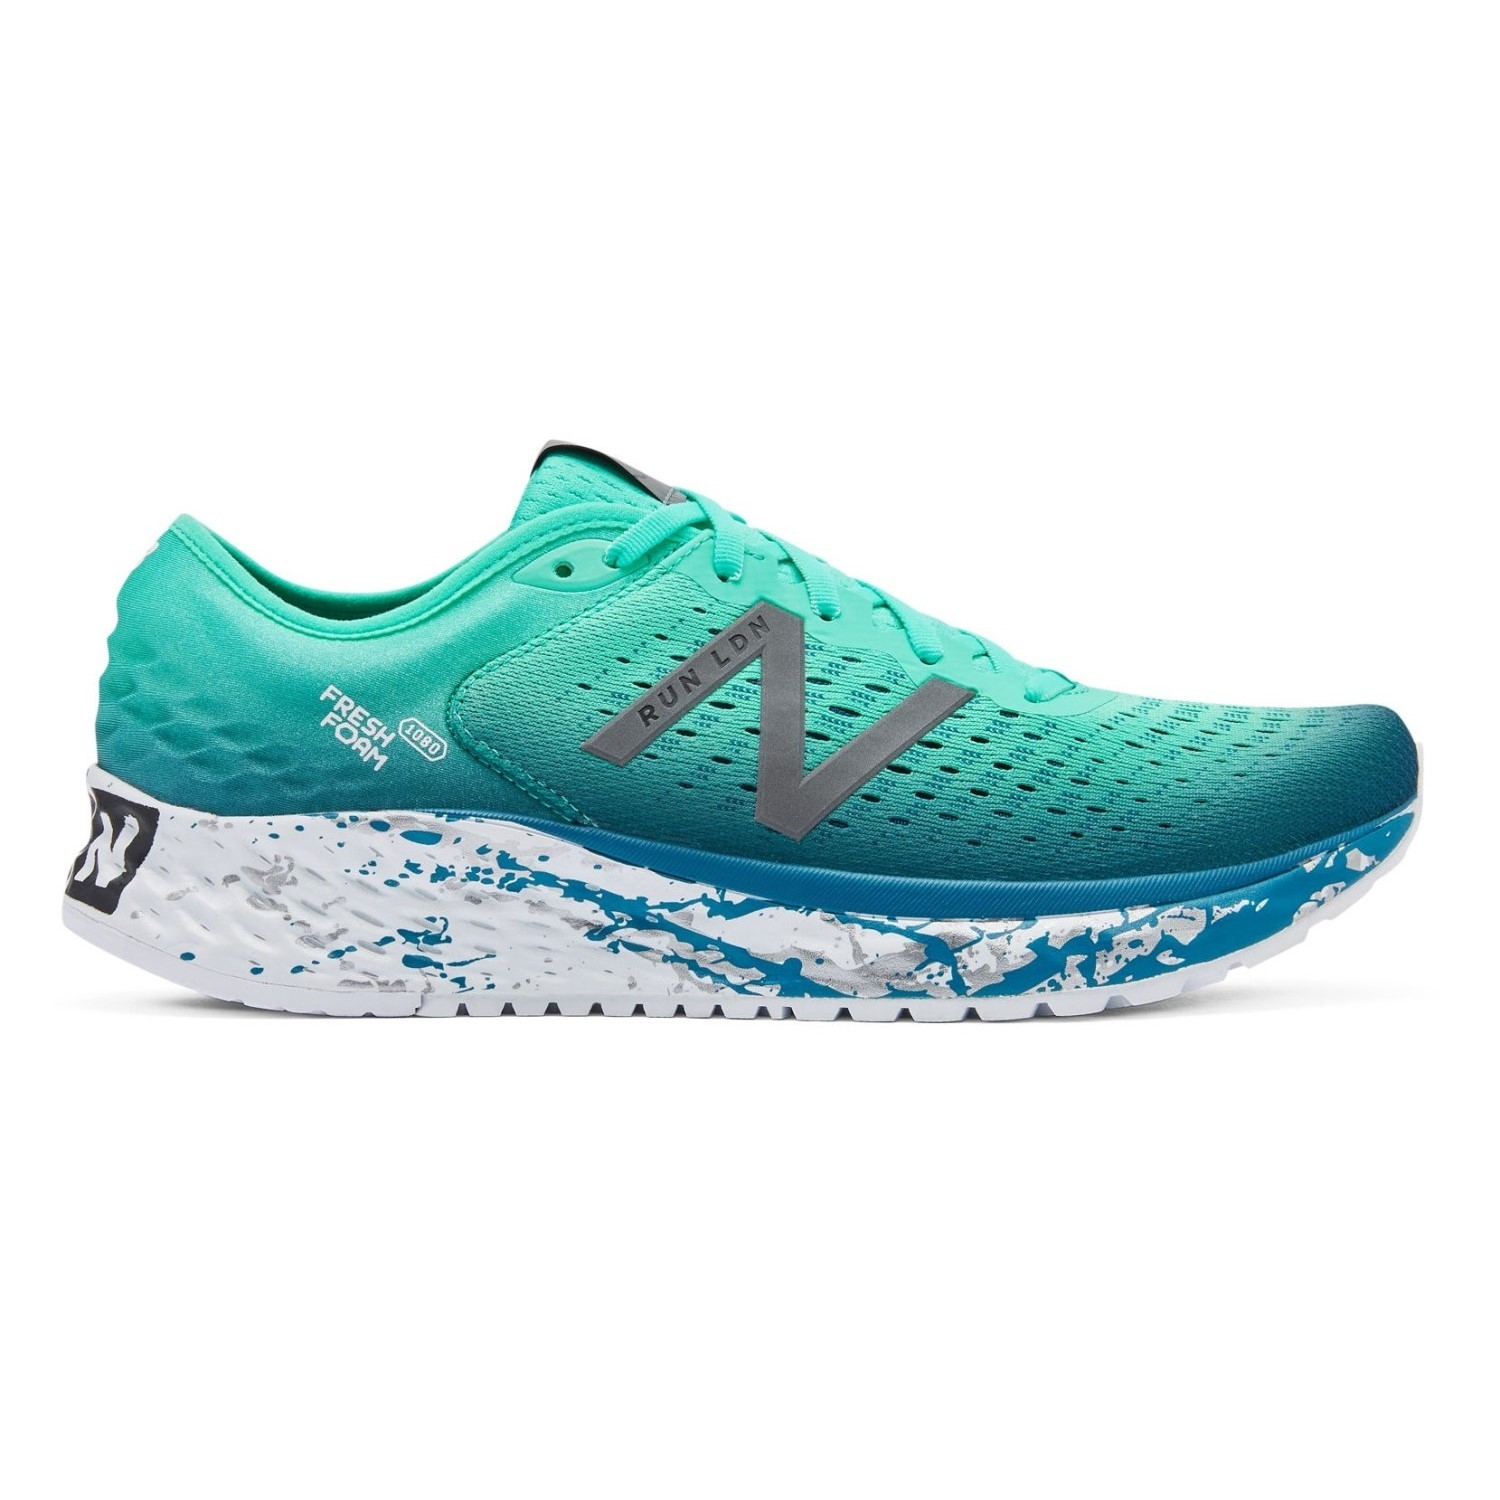 New Balance Fresh Foam 1080v9 London Edition Mens Running Shoes